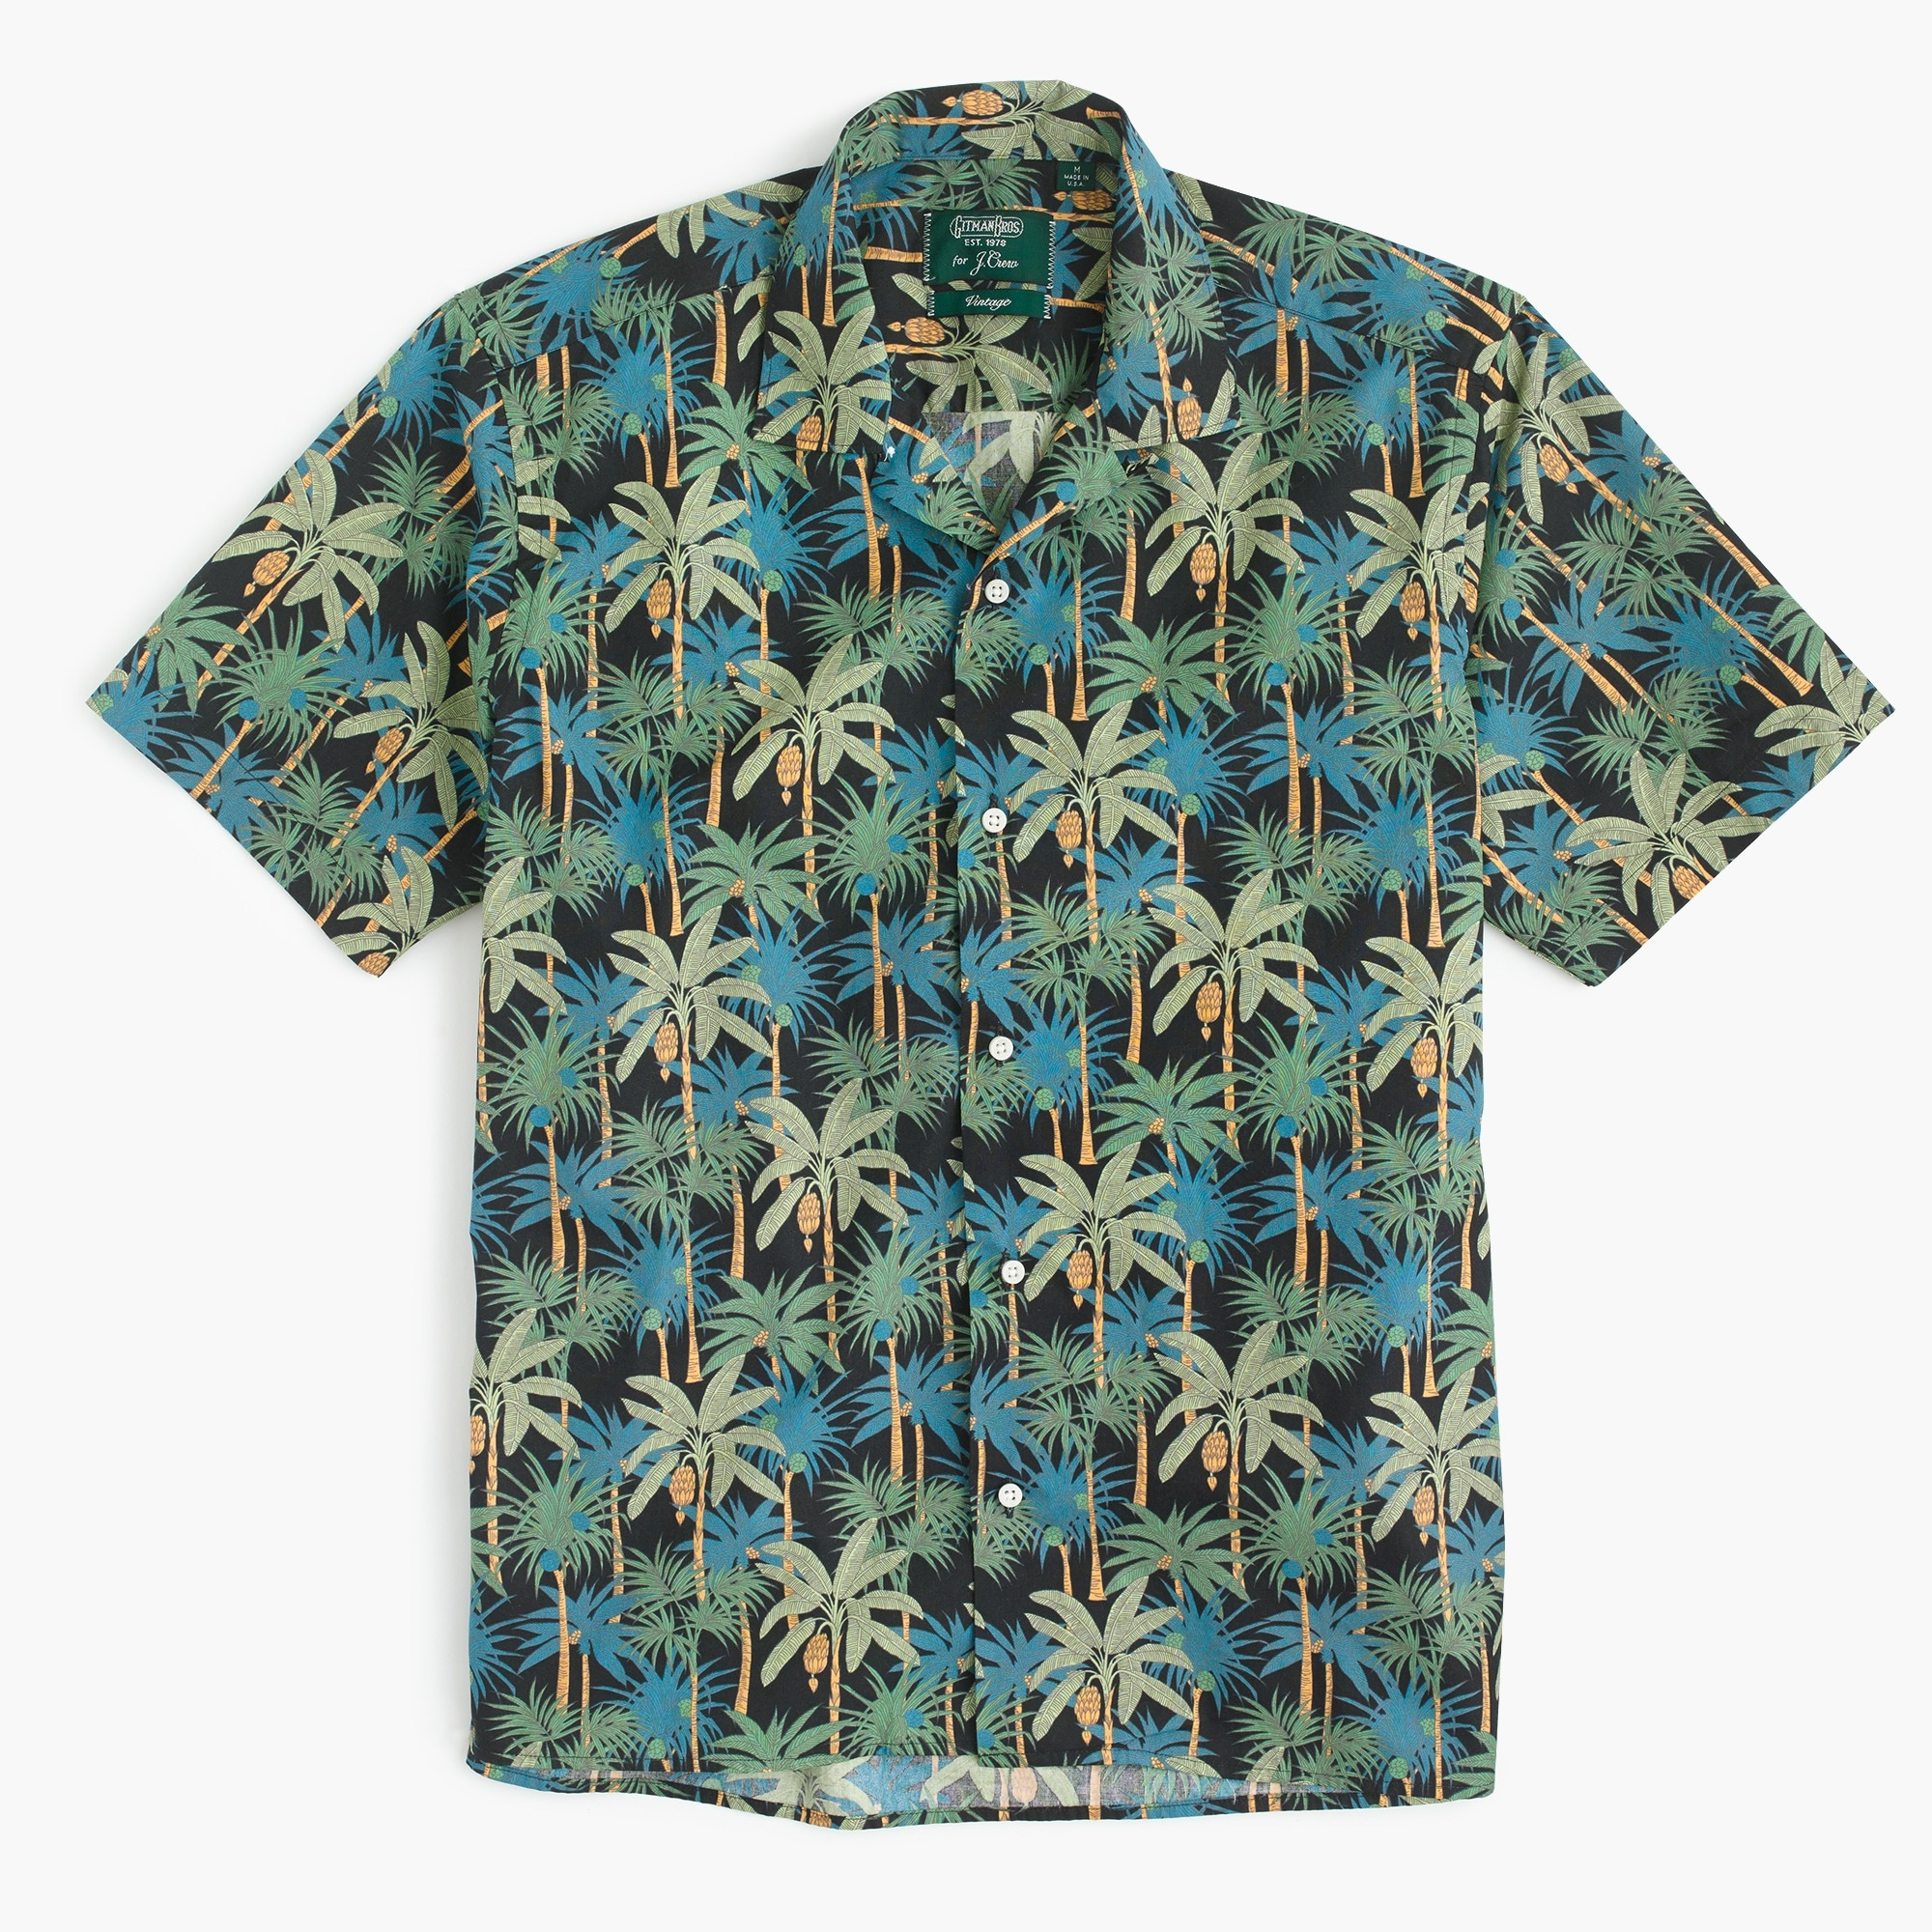 Gitman Vintage™ camp-collar shirt in palm tree print